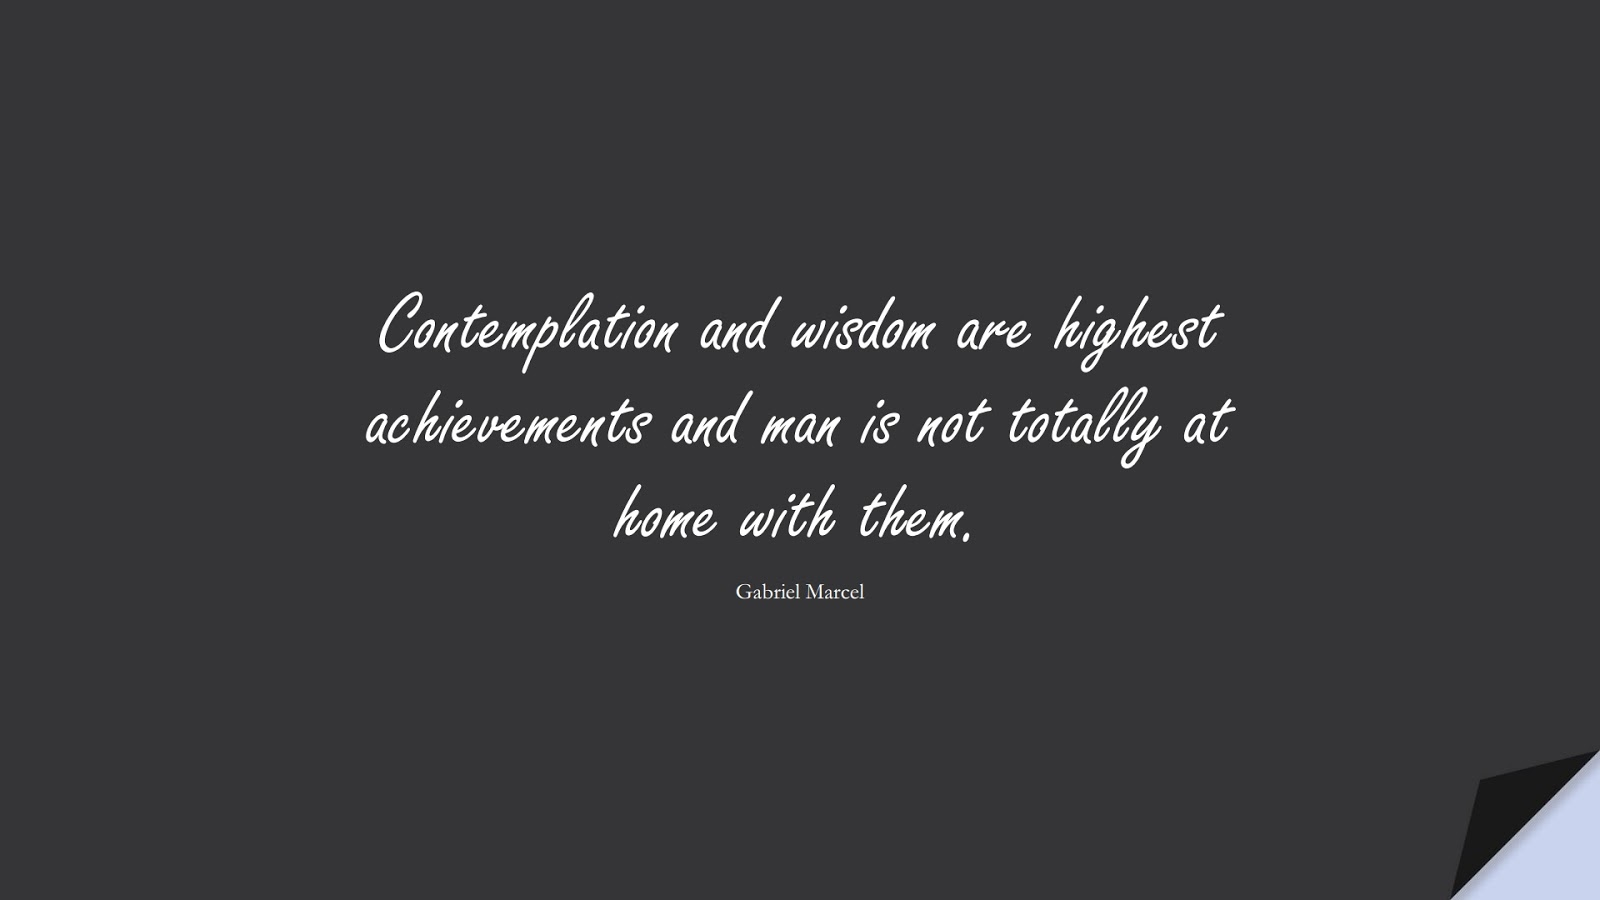 Contemplation and wisdom are highest achievements and man is not totally at home with them. (Gabriel Marcel);  #WordsofWisdom